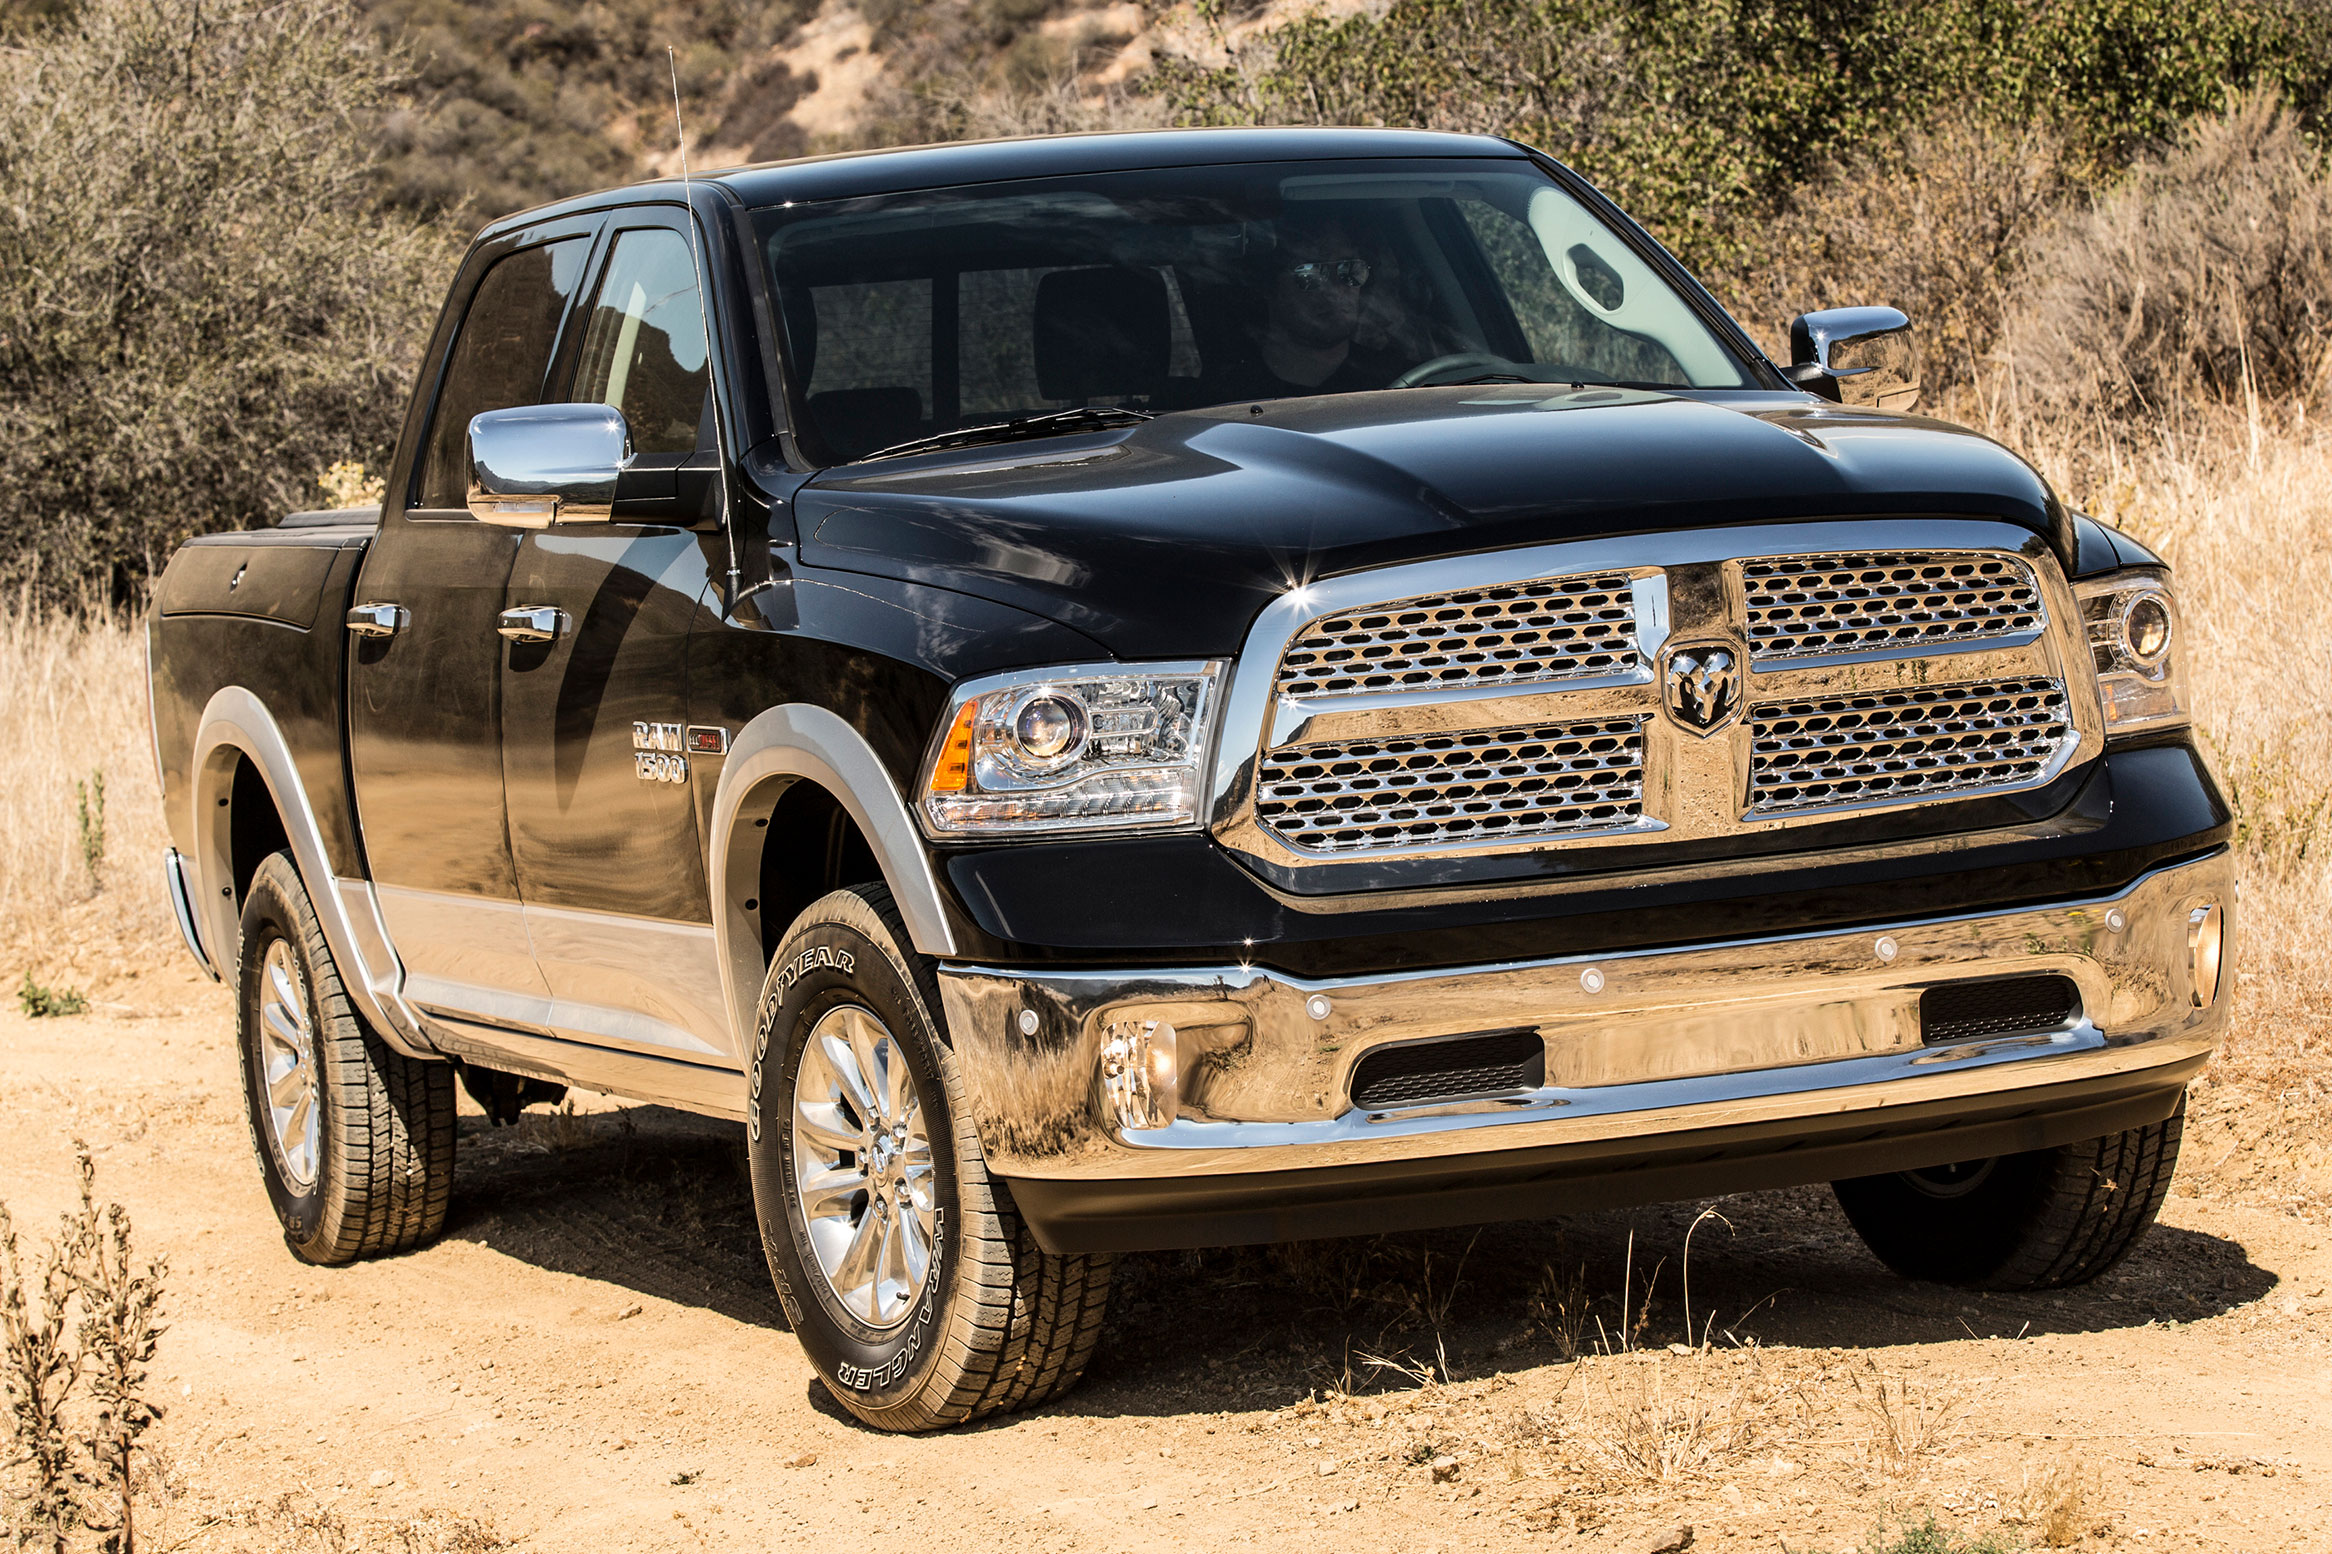 Settled: Jeep, RAM Pay $800 Million in Emissions Cheating